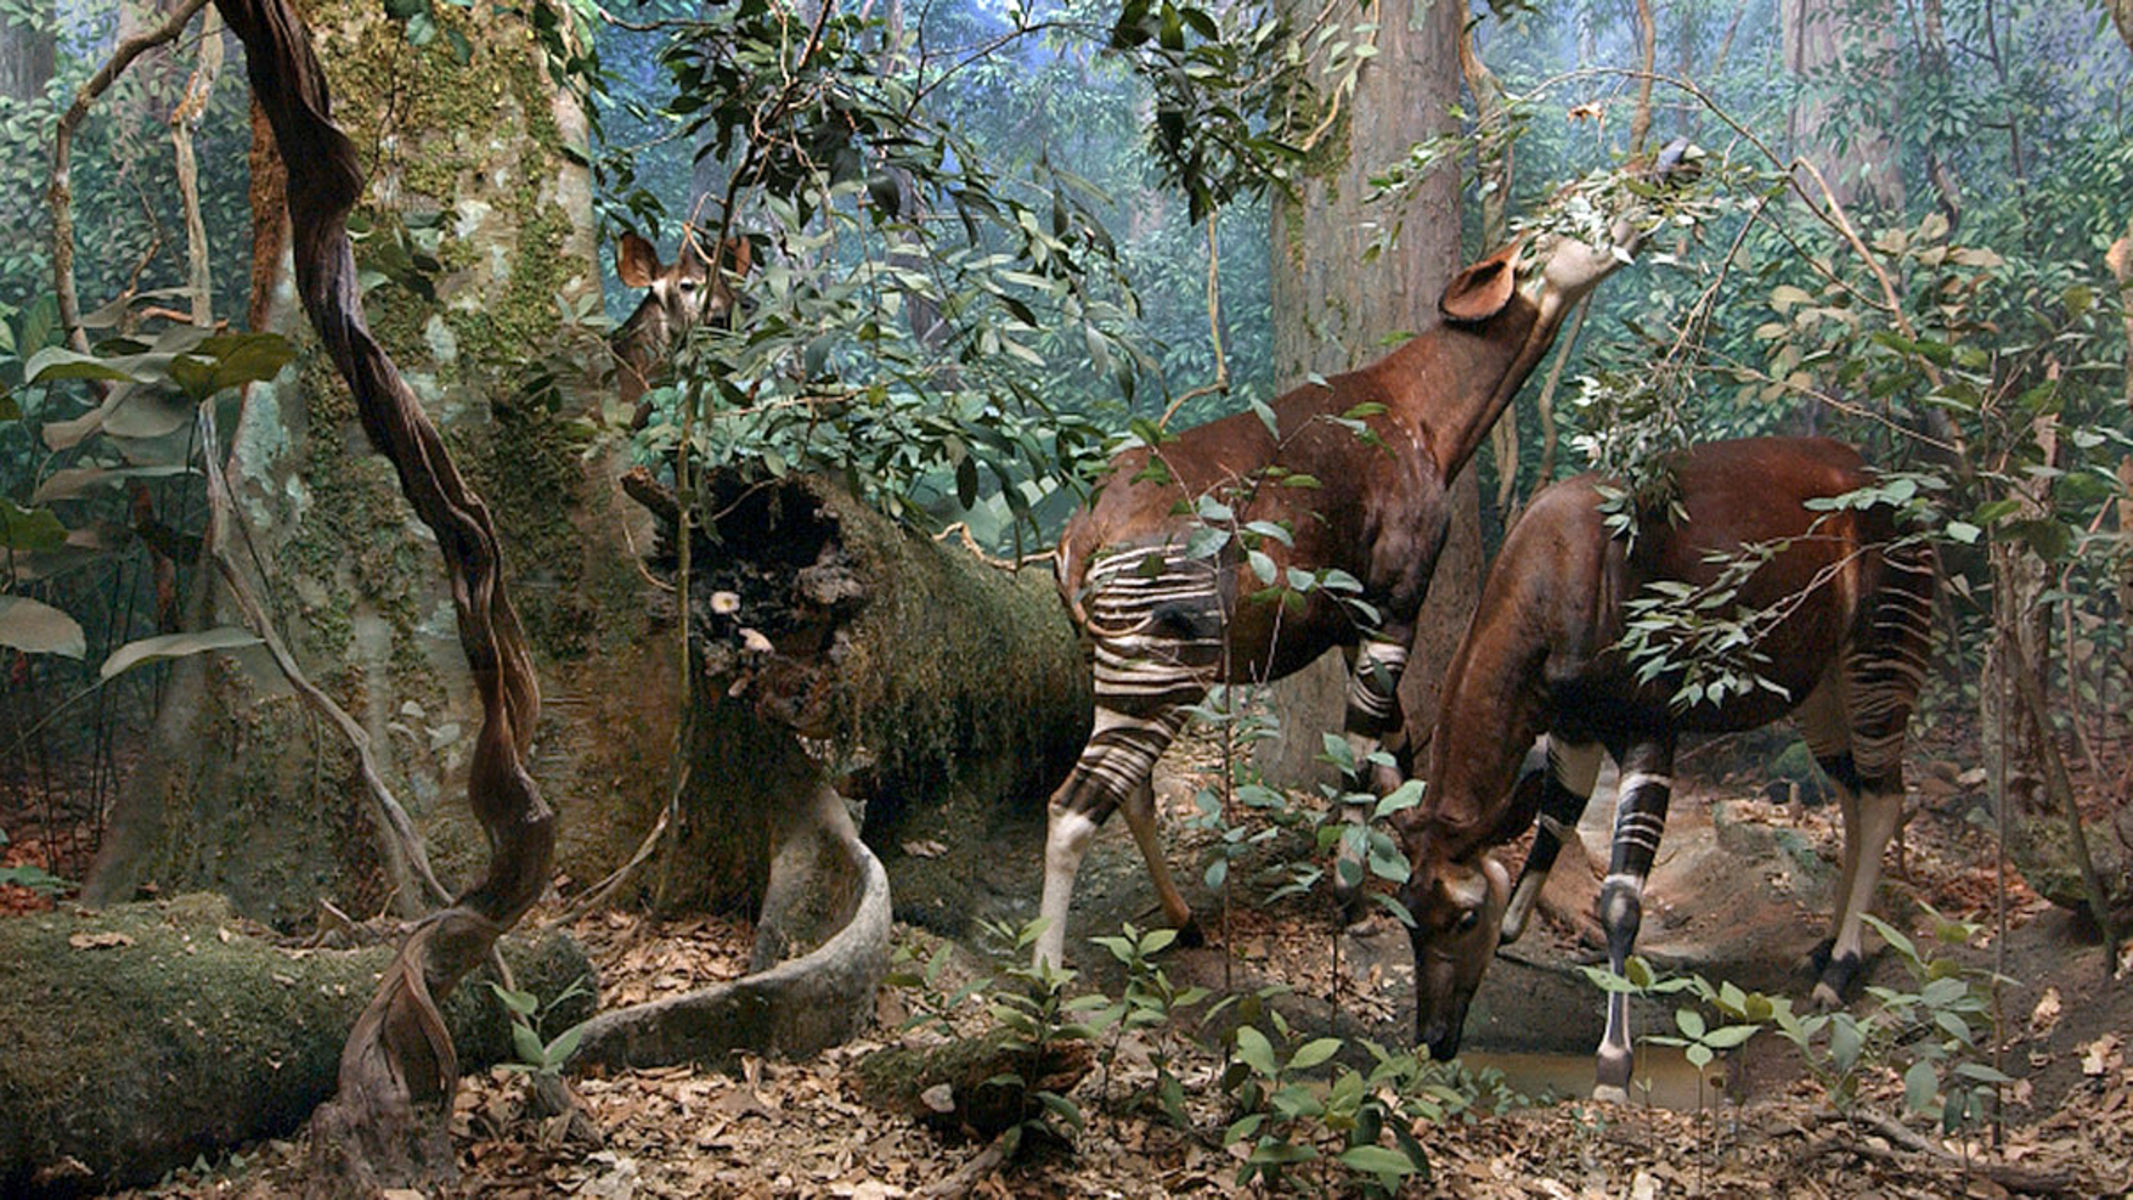 Life-sized models of two Okapi grazing on the leaves on trees in forest setting, while another stands behind them, barely visible through the leaves.